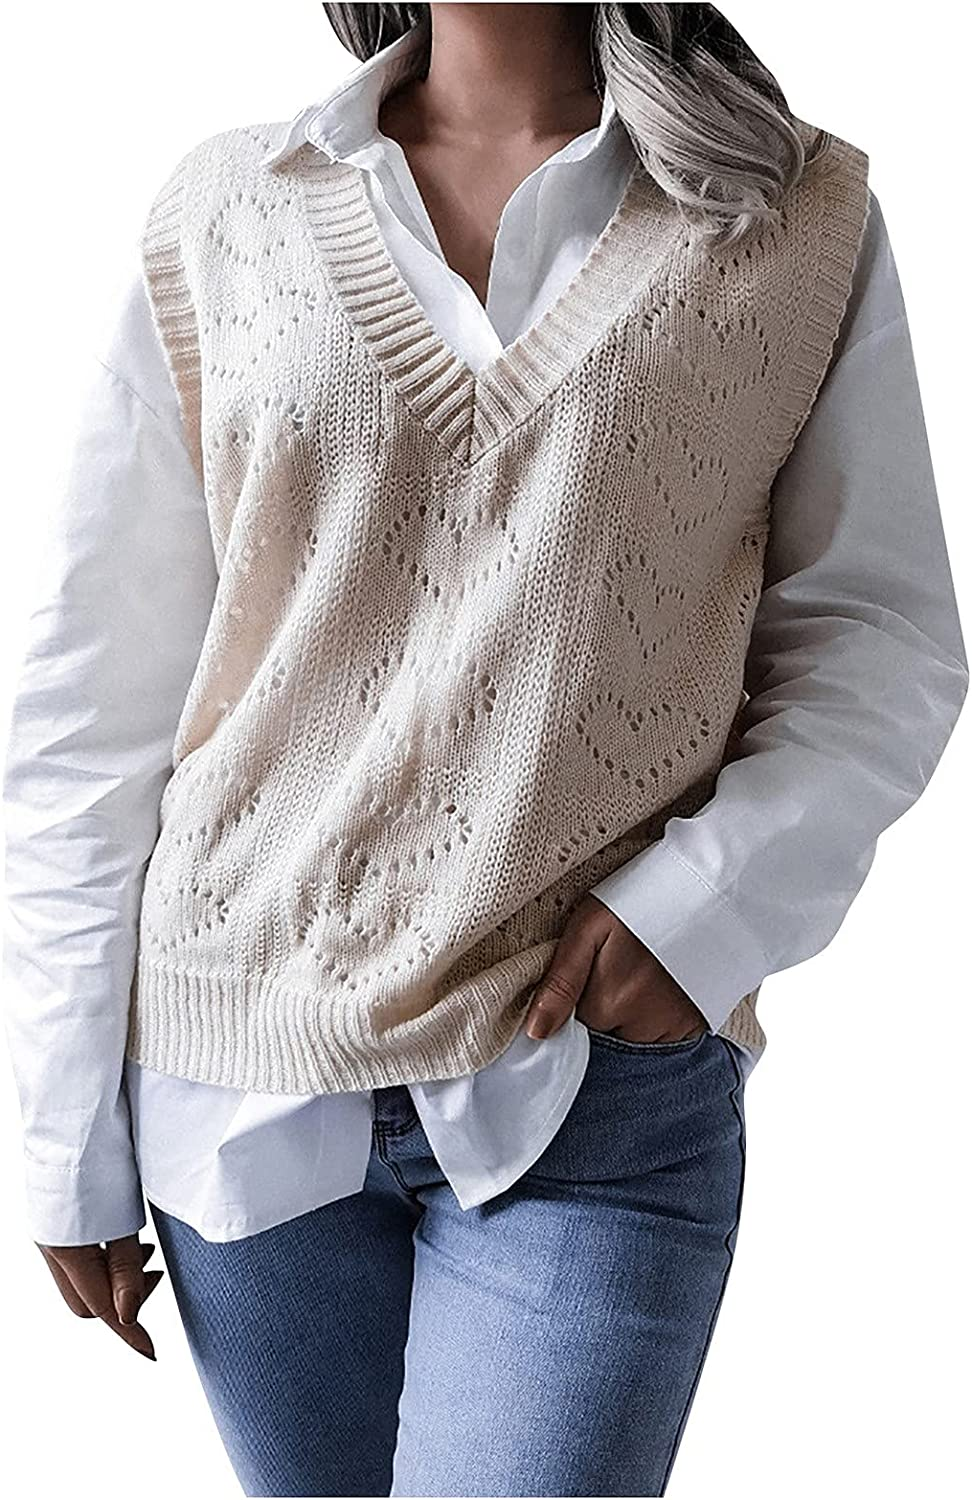 CCRFTGI Sweater Vest Women V Neck Hollow Solid Heart Pattern Sleeveless Casual Pullover Knitted Sweaters